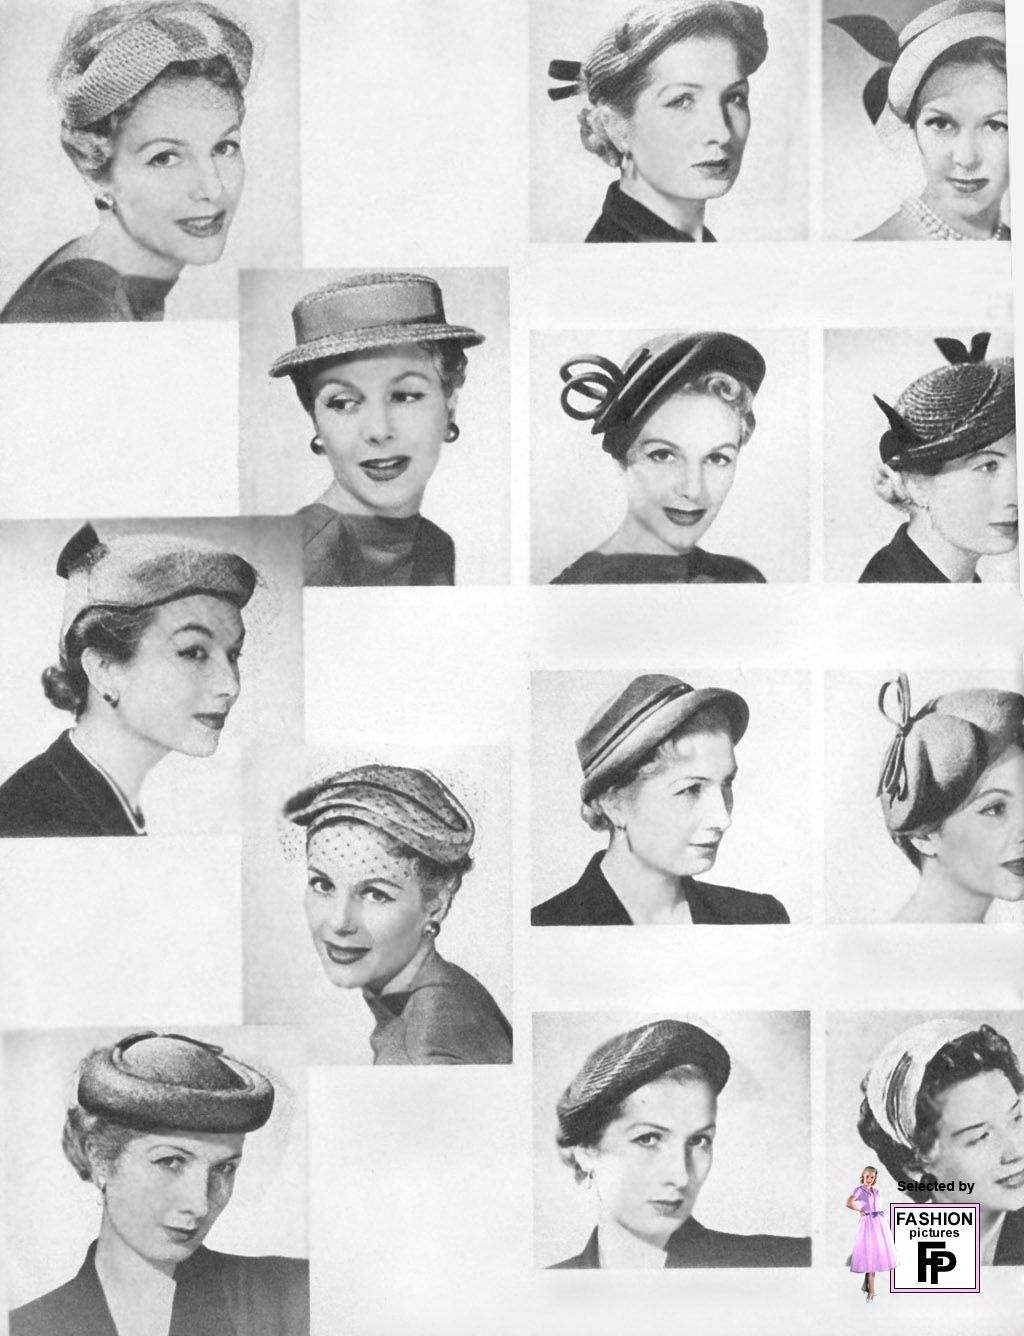 Woman S Hats Of The 1950 S You Weren T Completely Dressed Without A Hat Wish They Would Make A Comeback Retro Hats Hats Vintage Fancy Hats